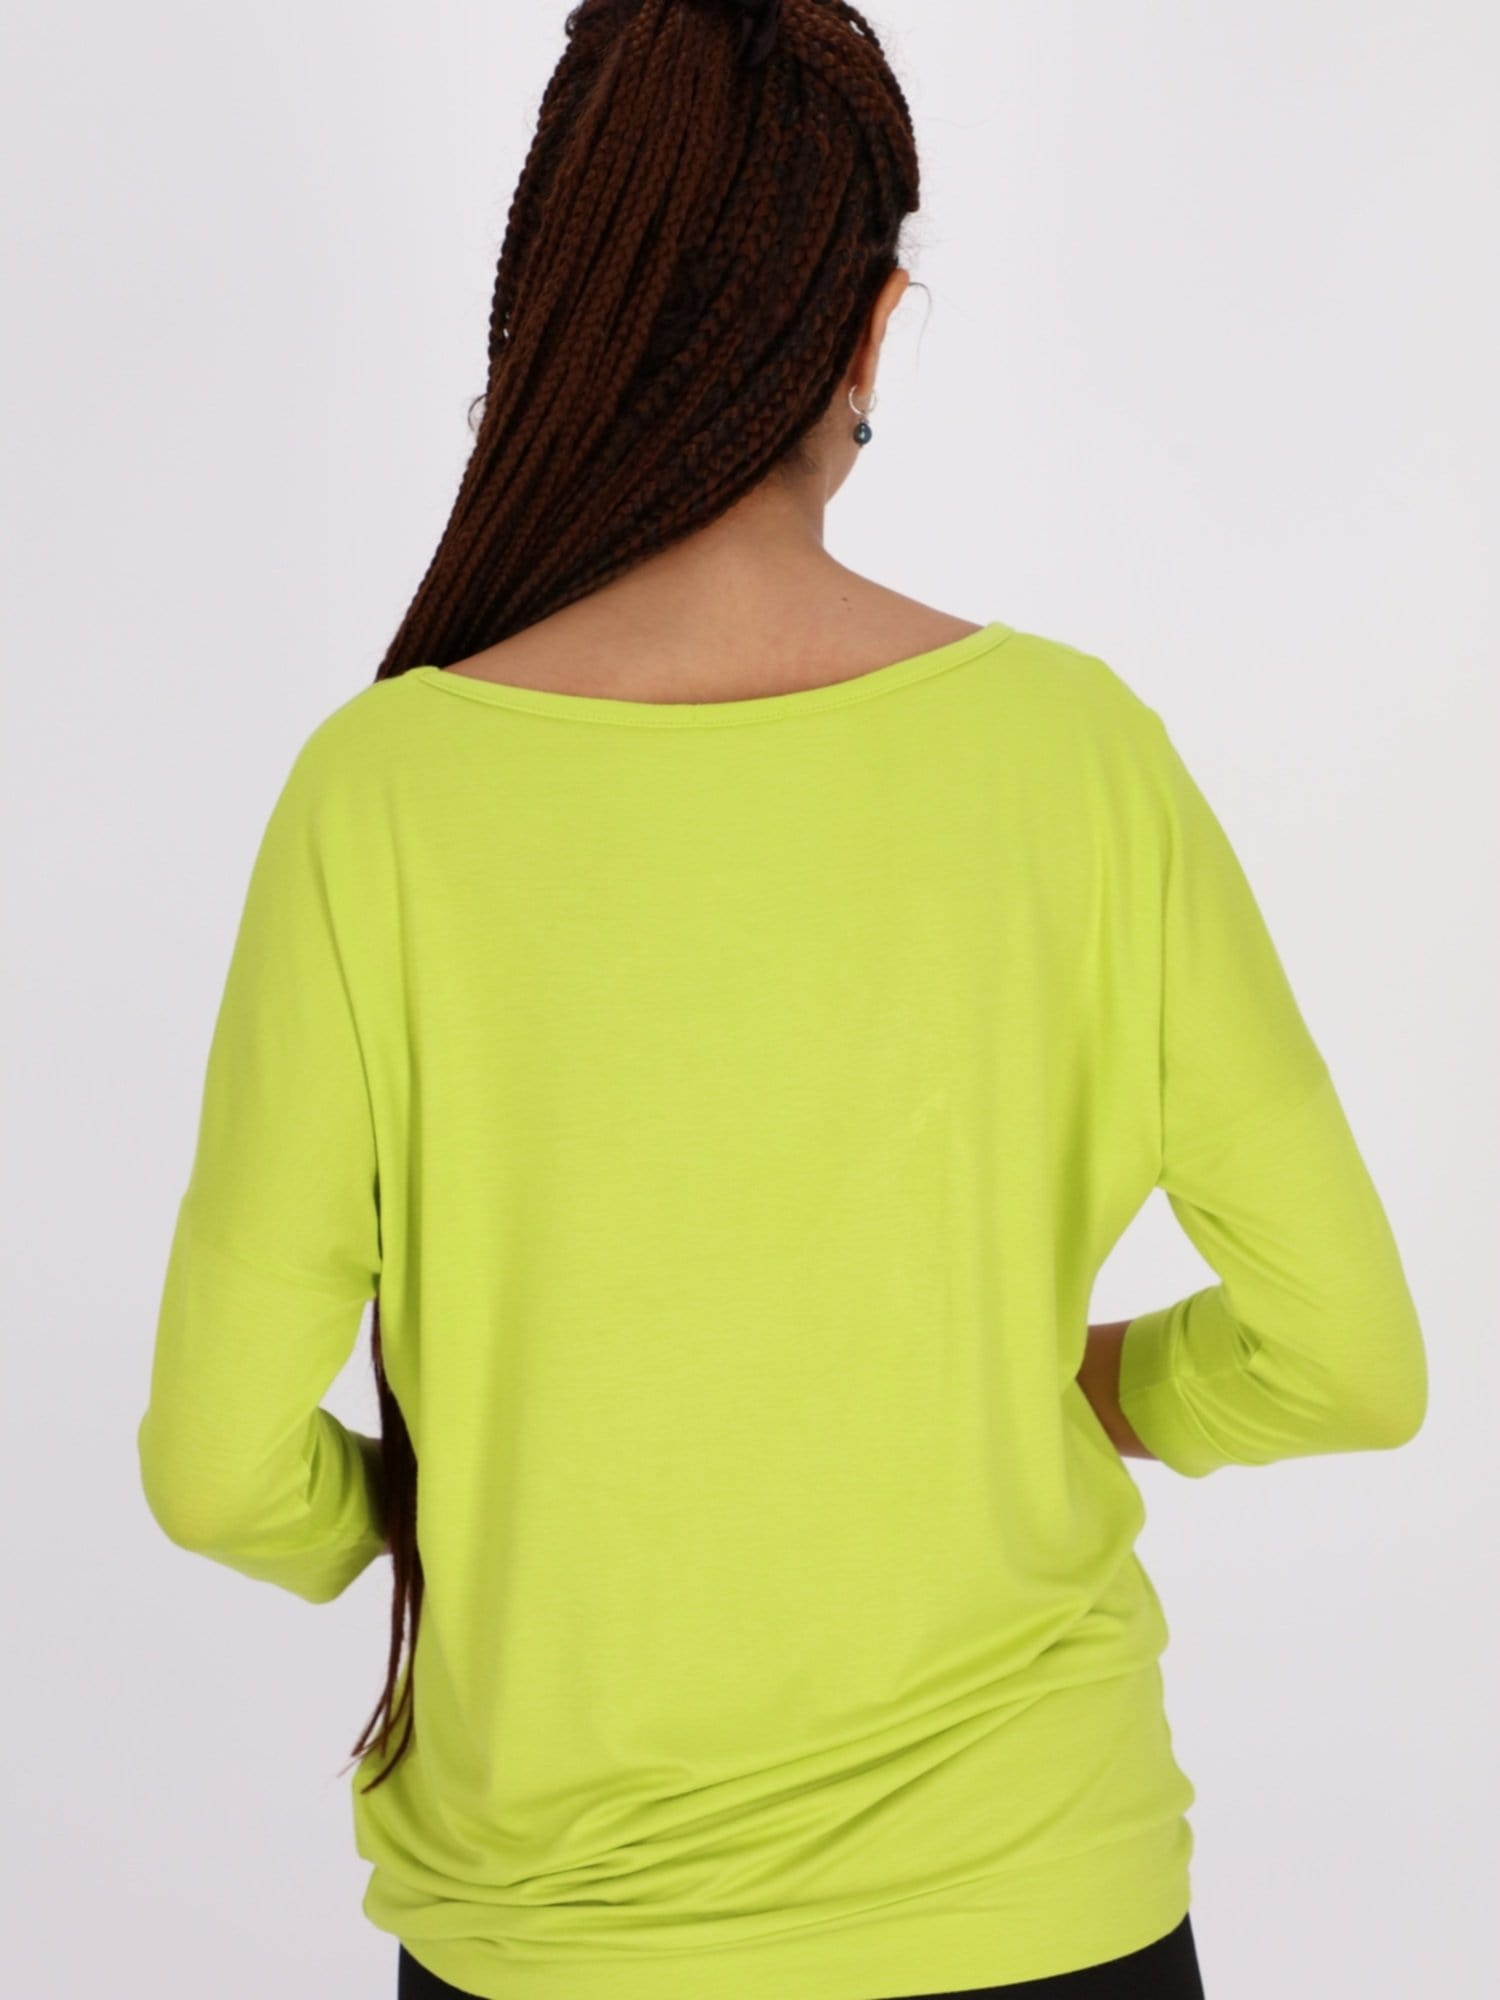 OR Tops & Blouses Front Text Print 3/4 Cuff Sleeve Top